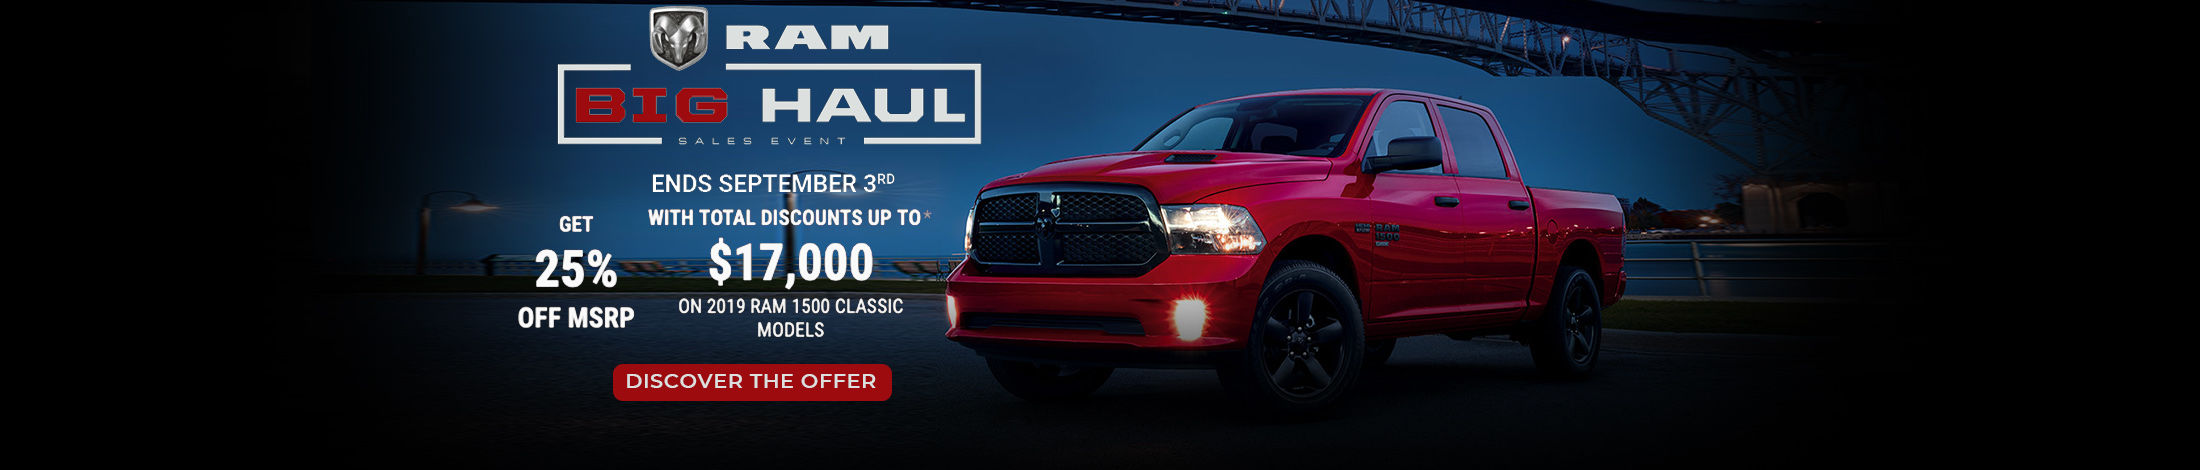 RAM Big Haul event